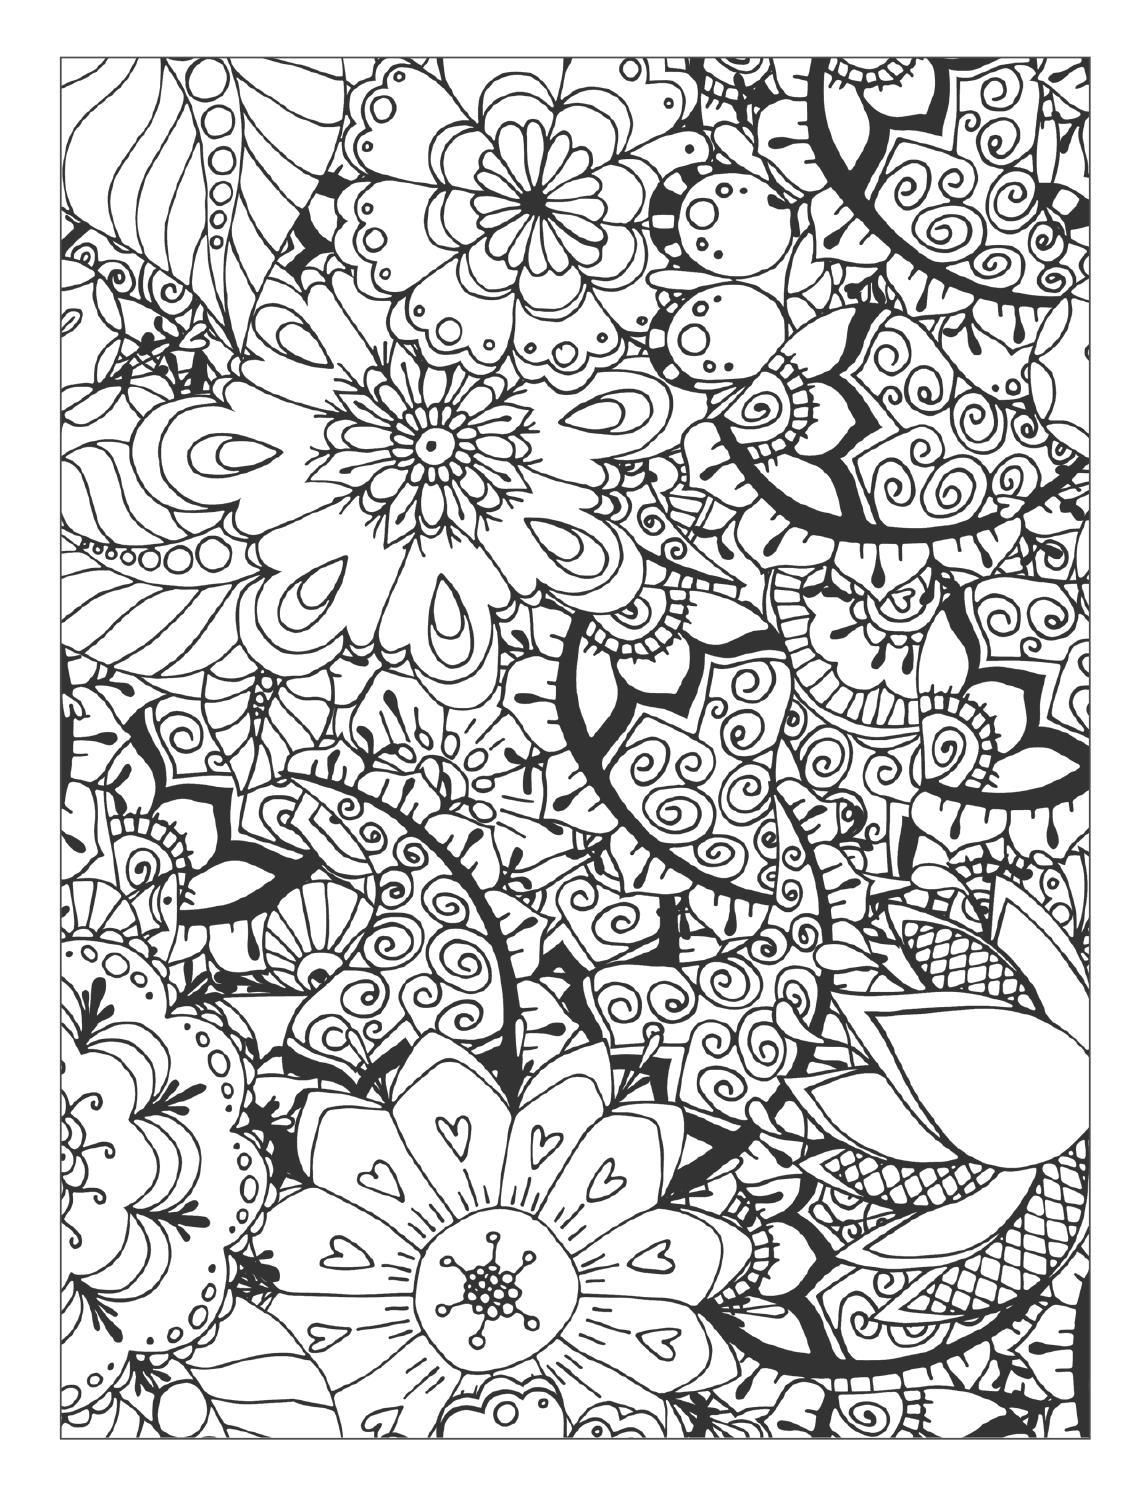 beautiful flowers coloring pages flower page printable coloring sheets flower coloring beautiful coloring pages flowers